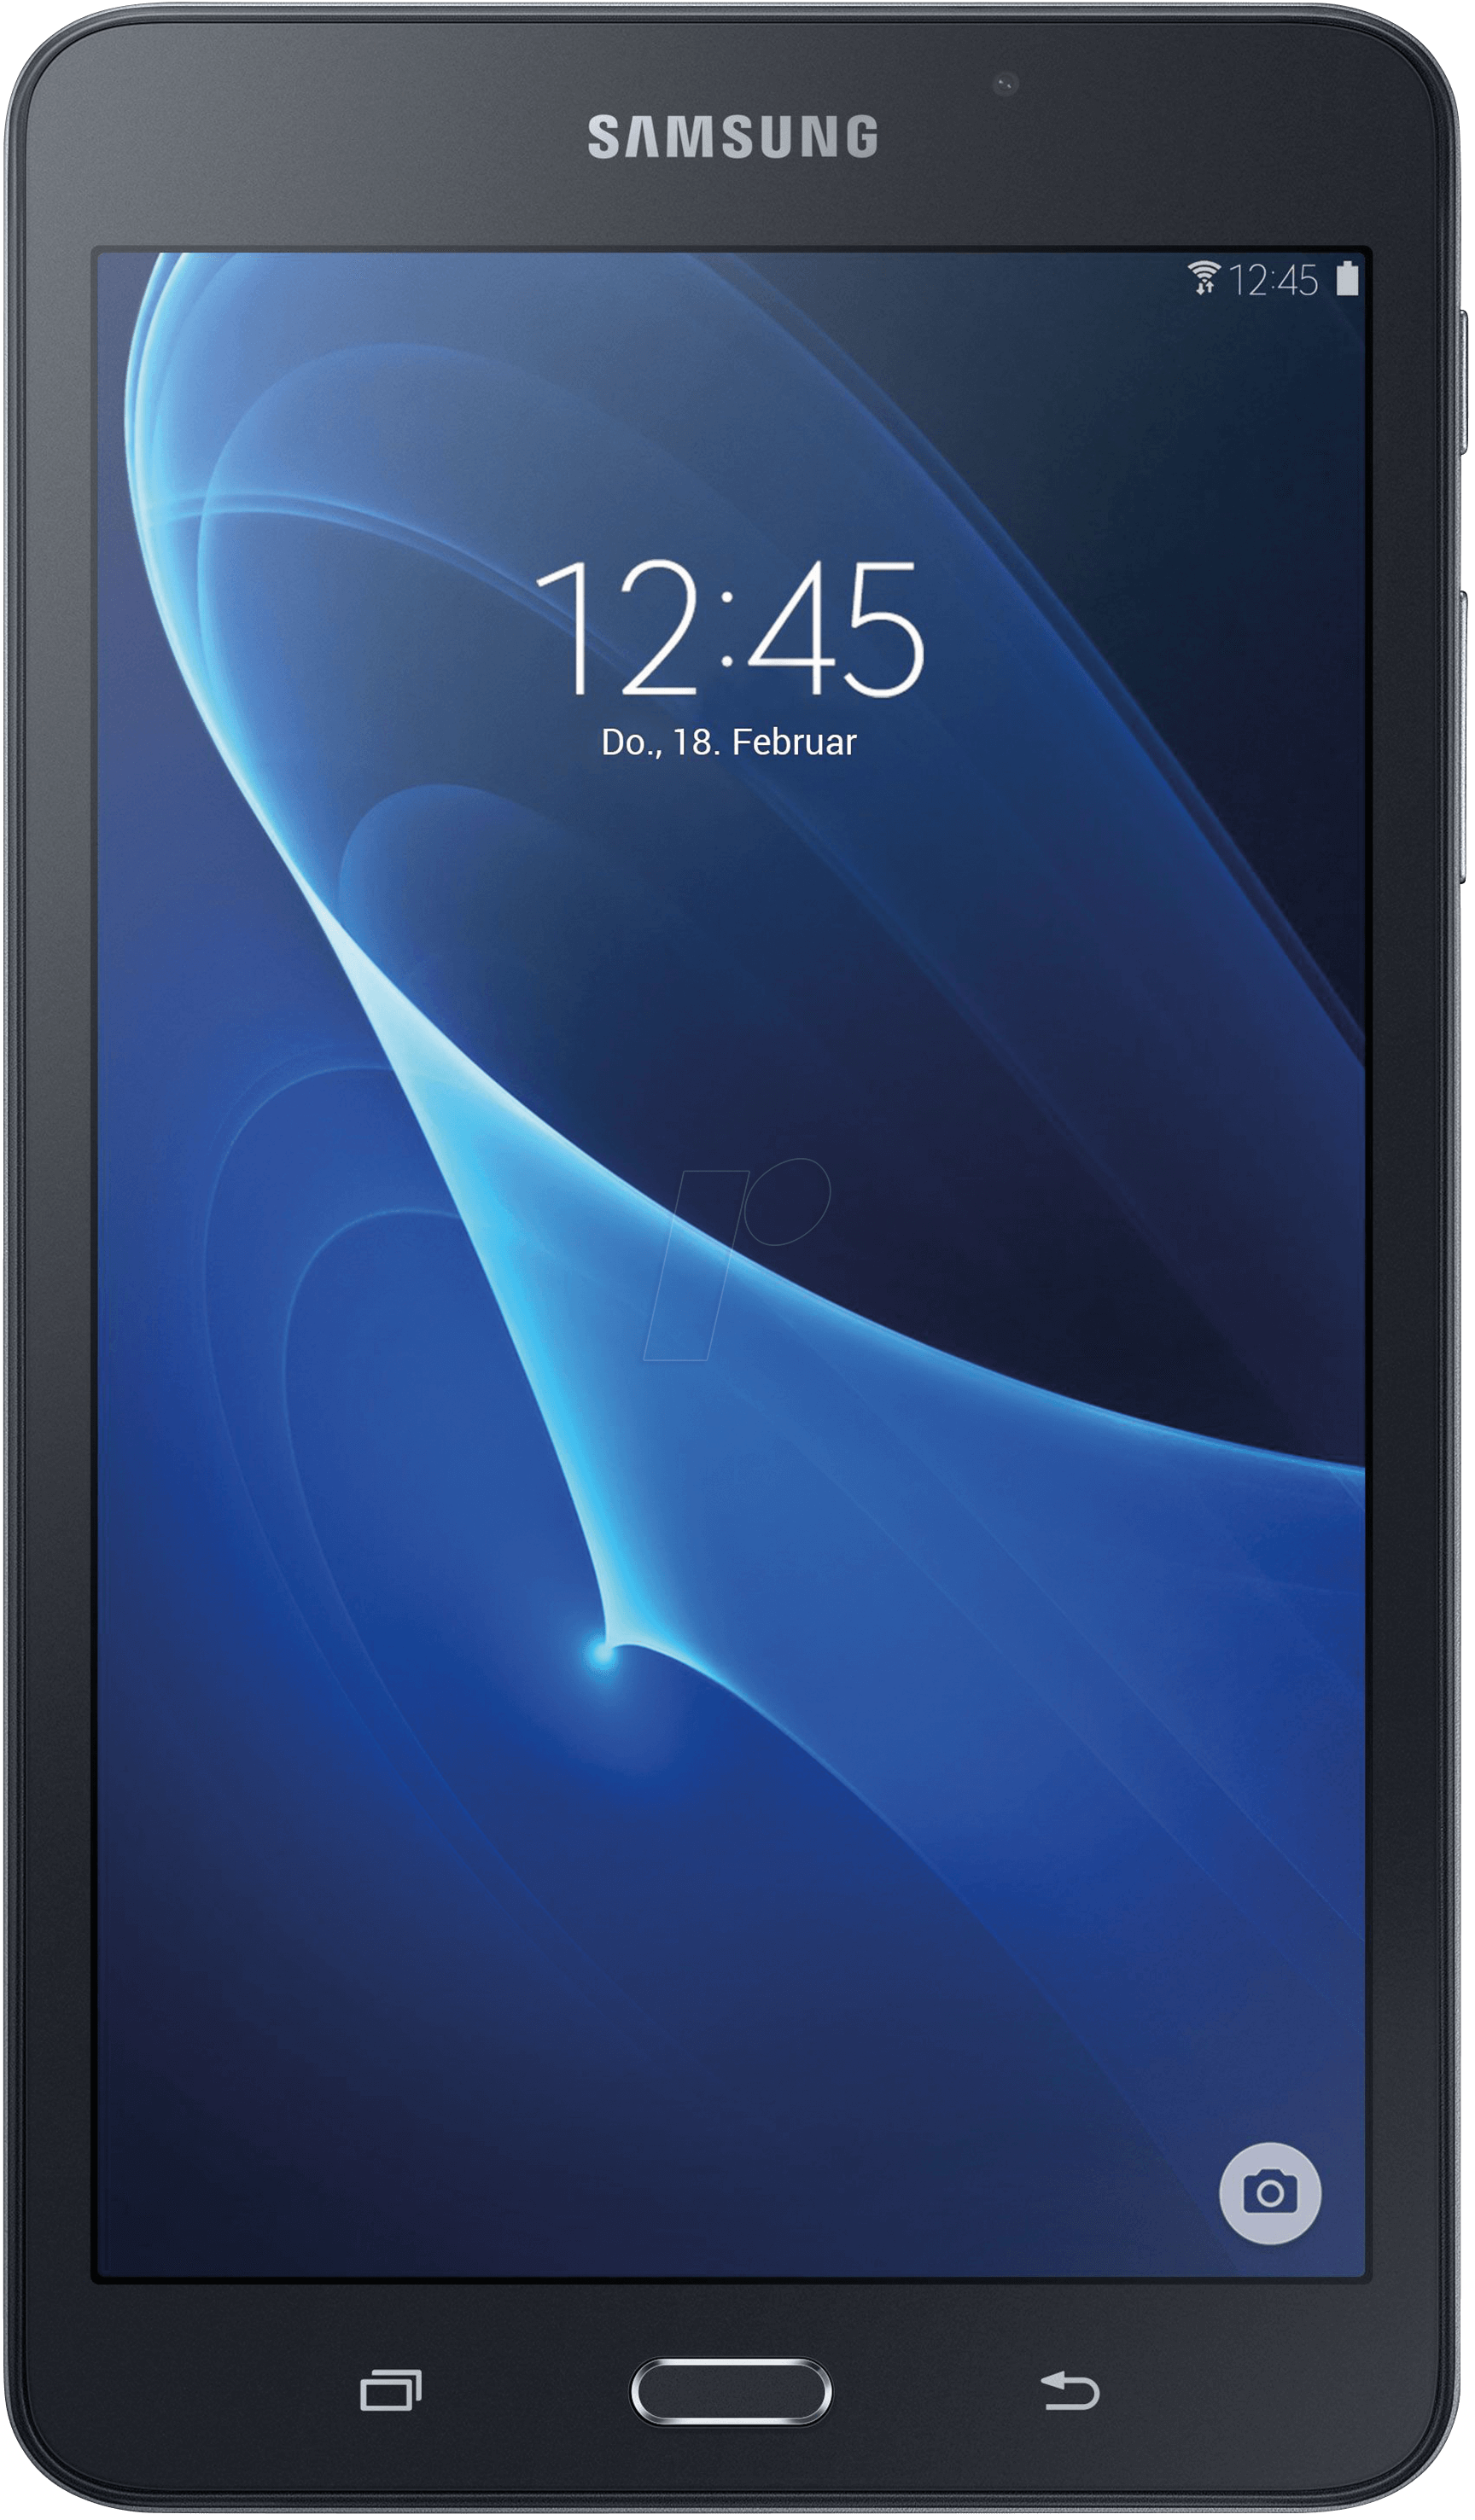 SM T280 8 SW - Tablet, Galaxy Tab A (2016, 7.0), Android 5.1